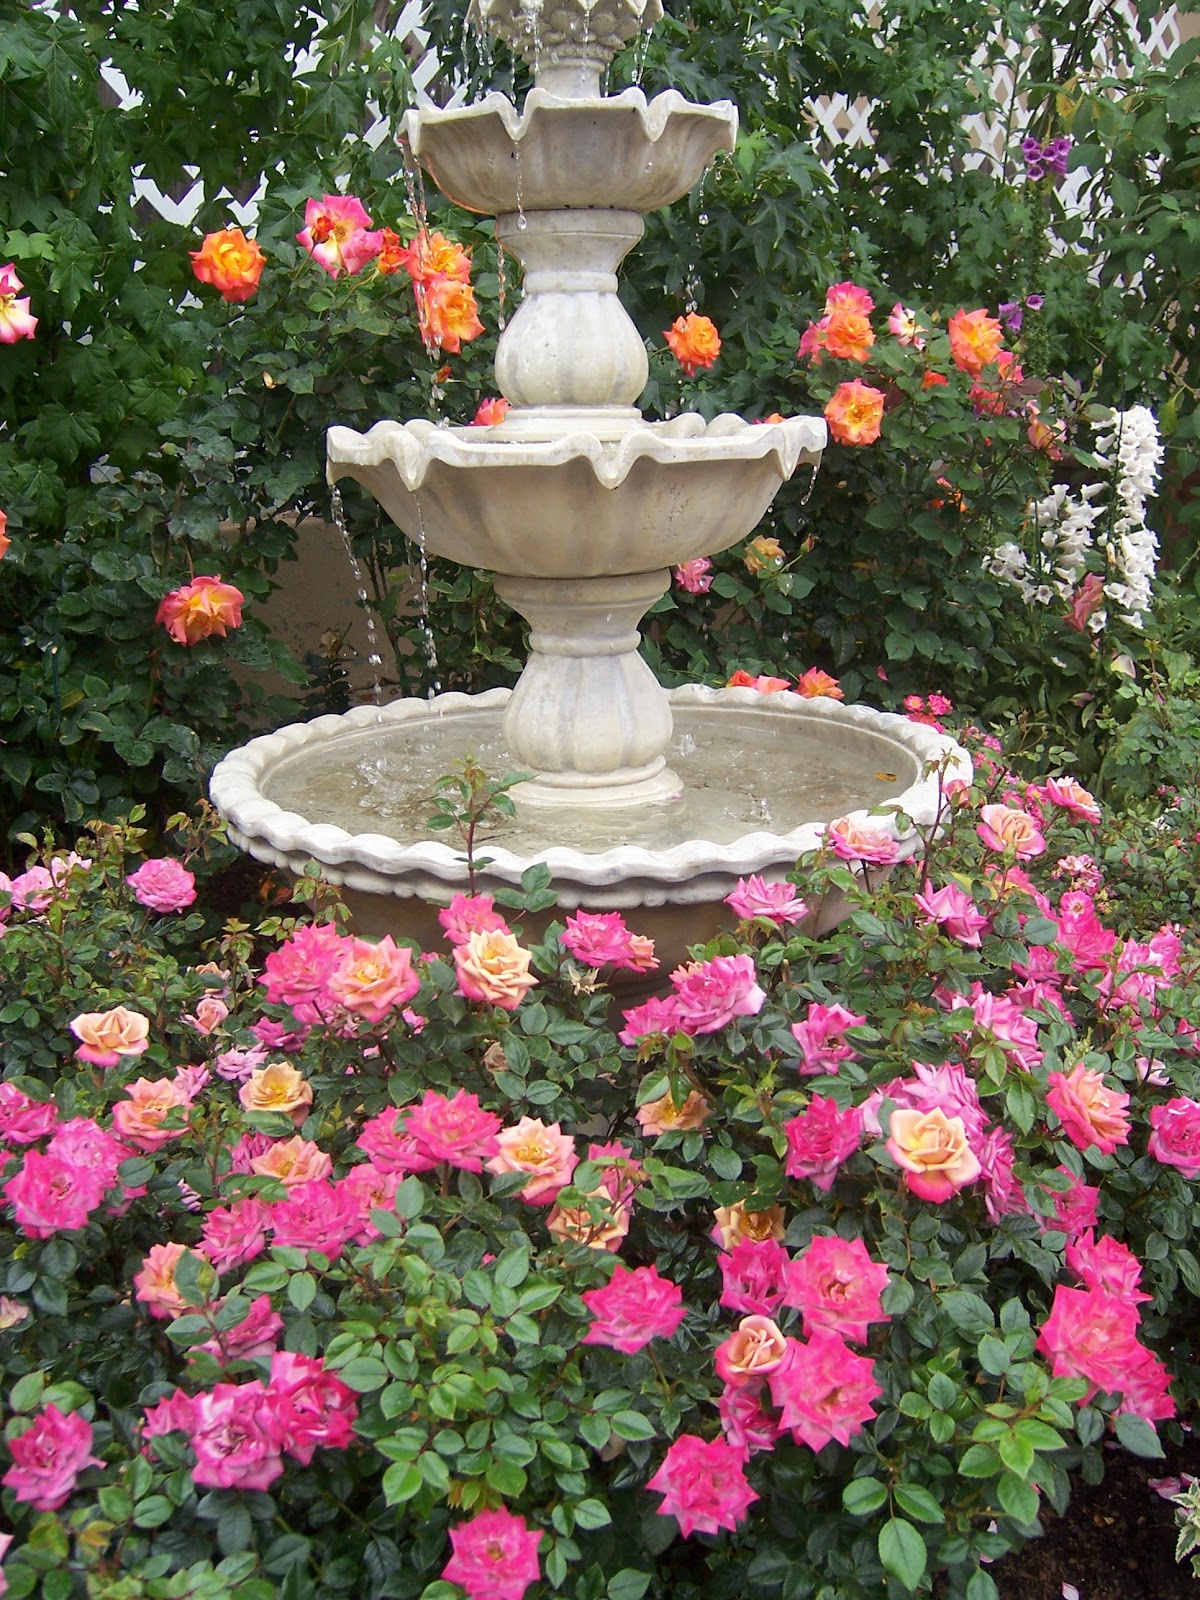 Landscape Garden Fountain : The minute gardener photo roses around a water fountain